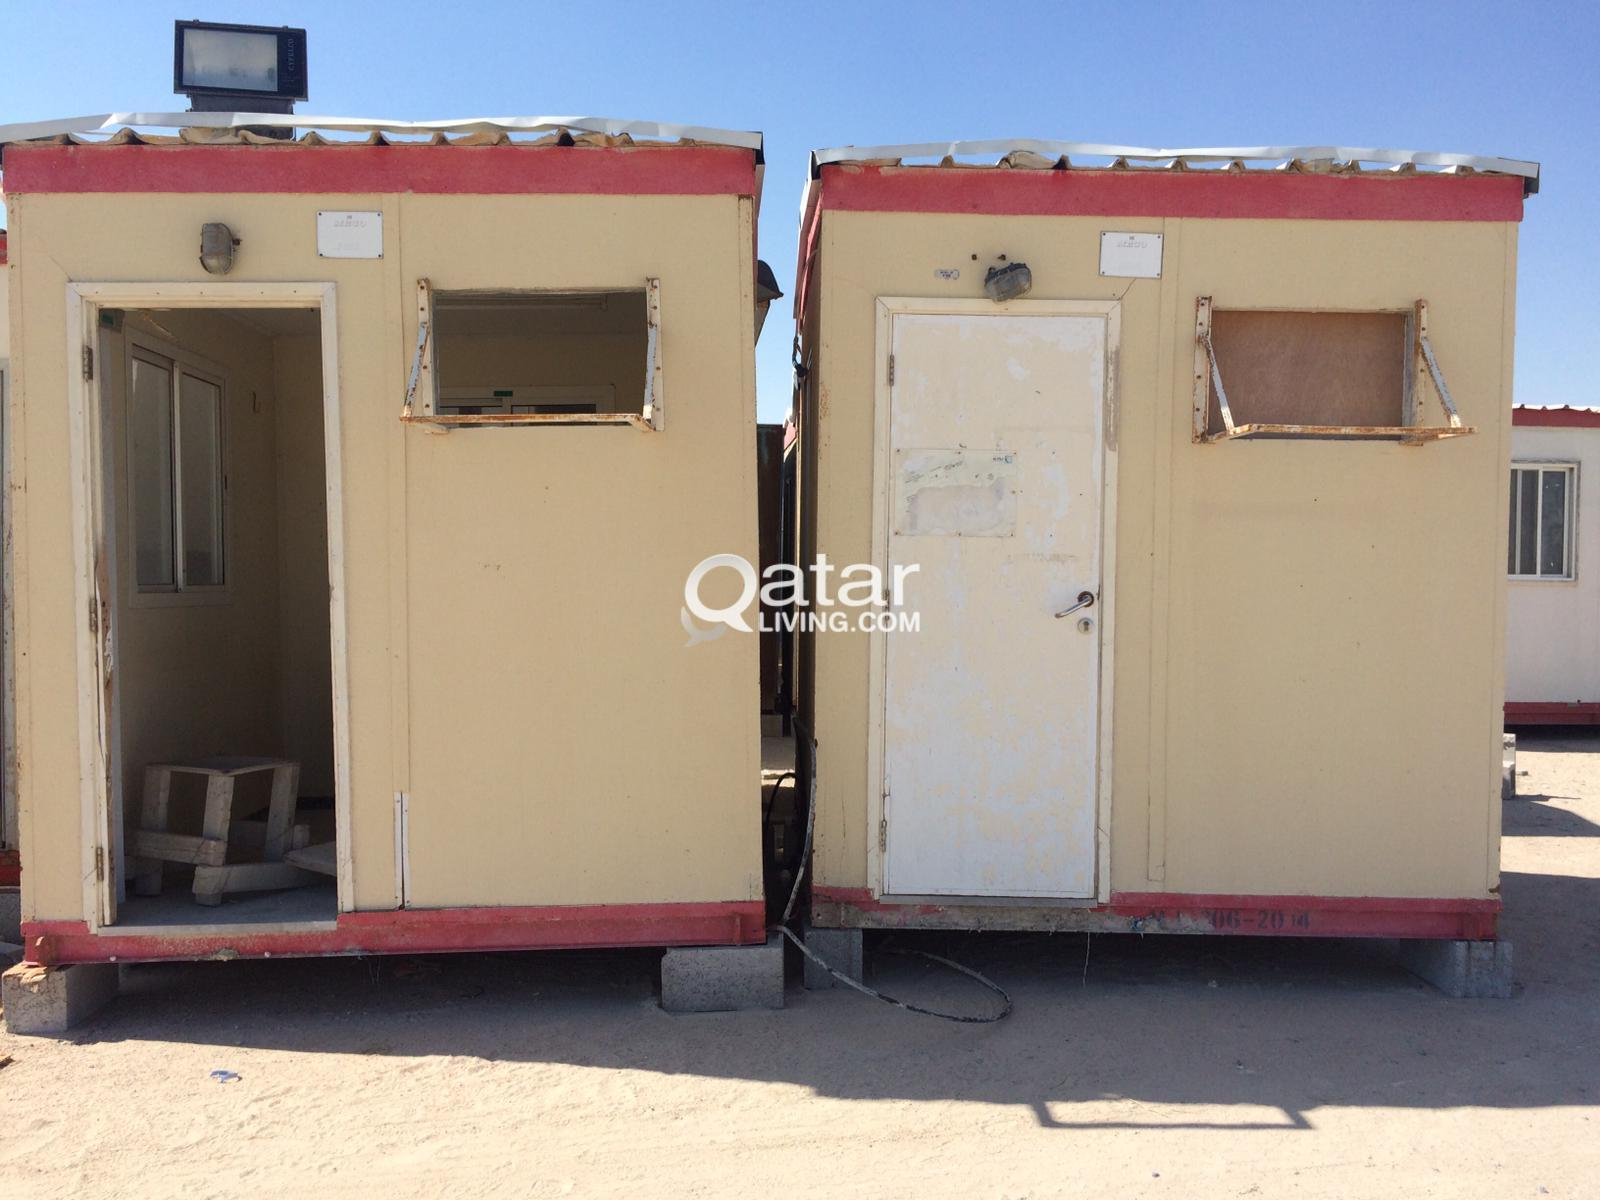 USED PORTABLE CABINS FOR SALE | Qatar Living